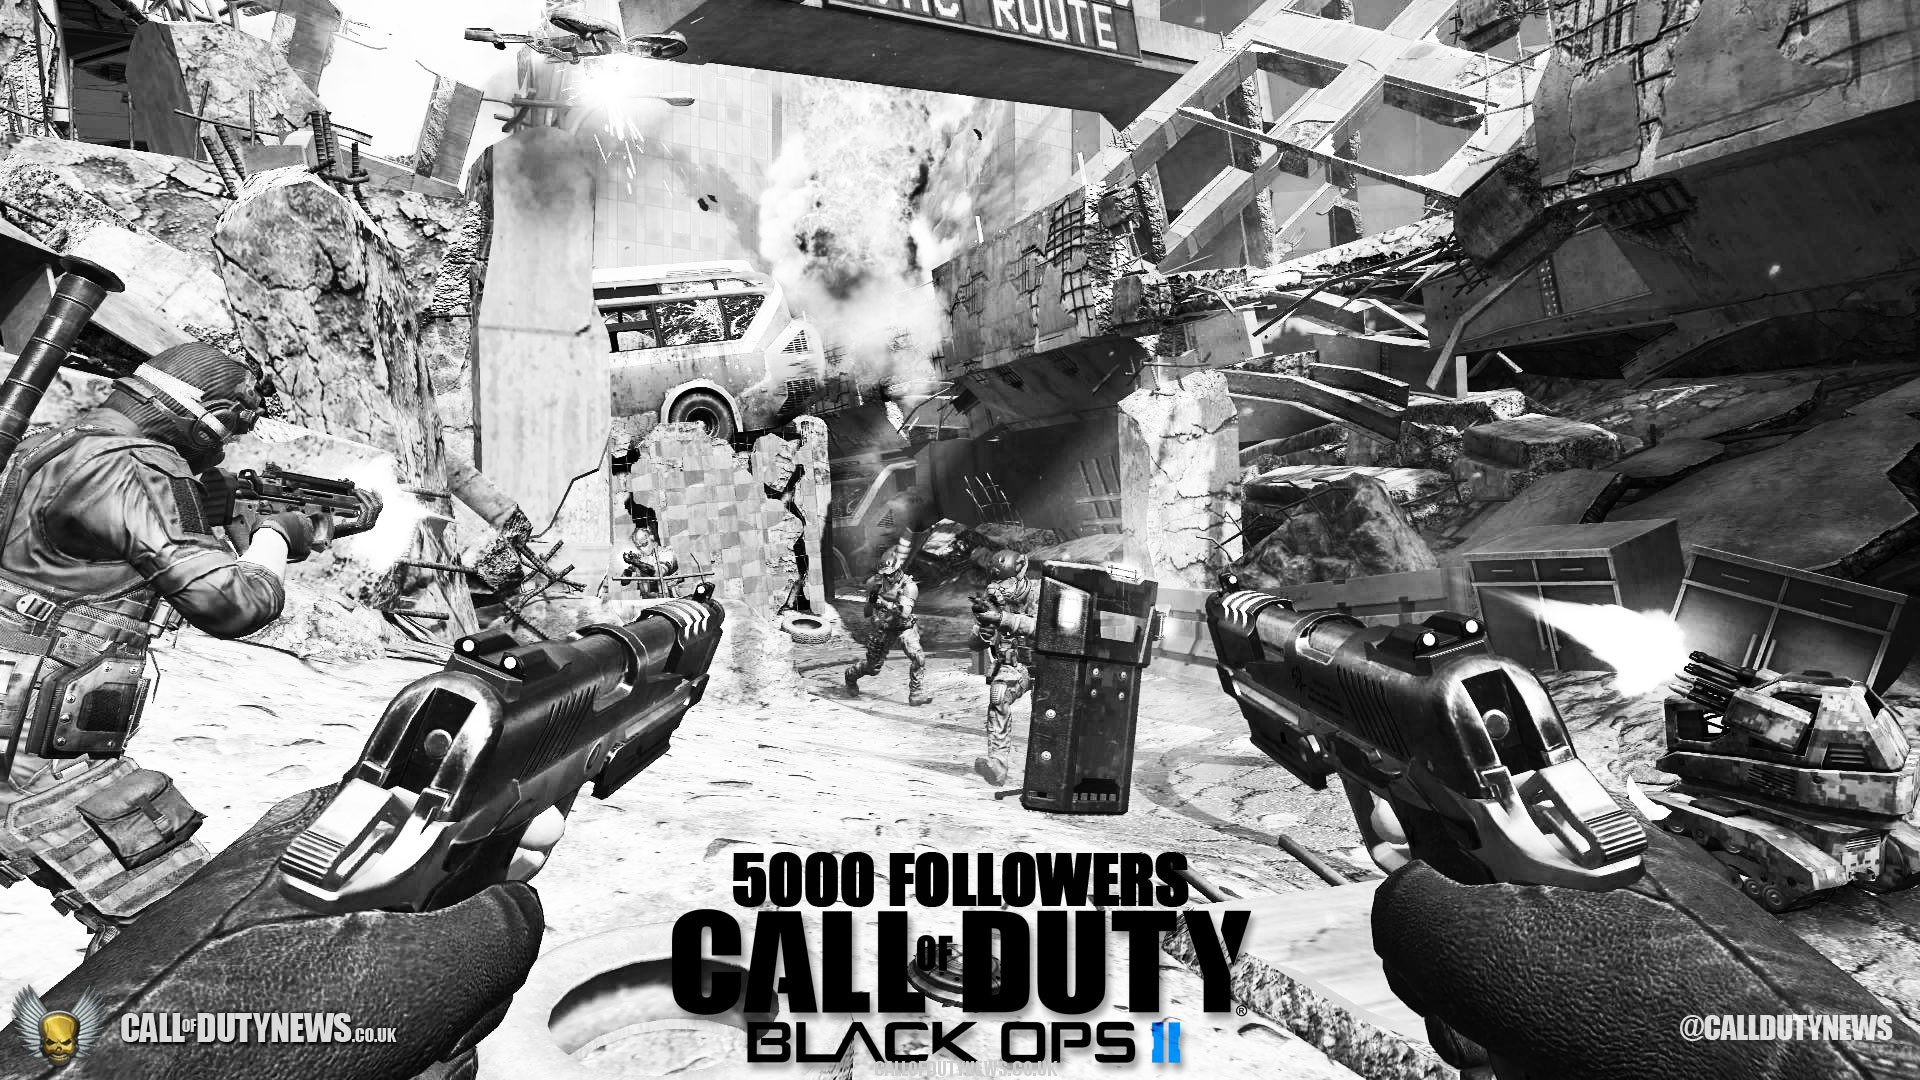 Black Ops 2 Wallpaper 79 5000 Followers Destroyrepeat Destroy